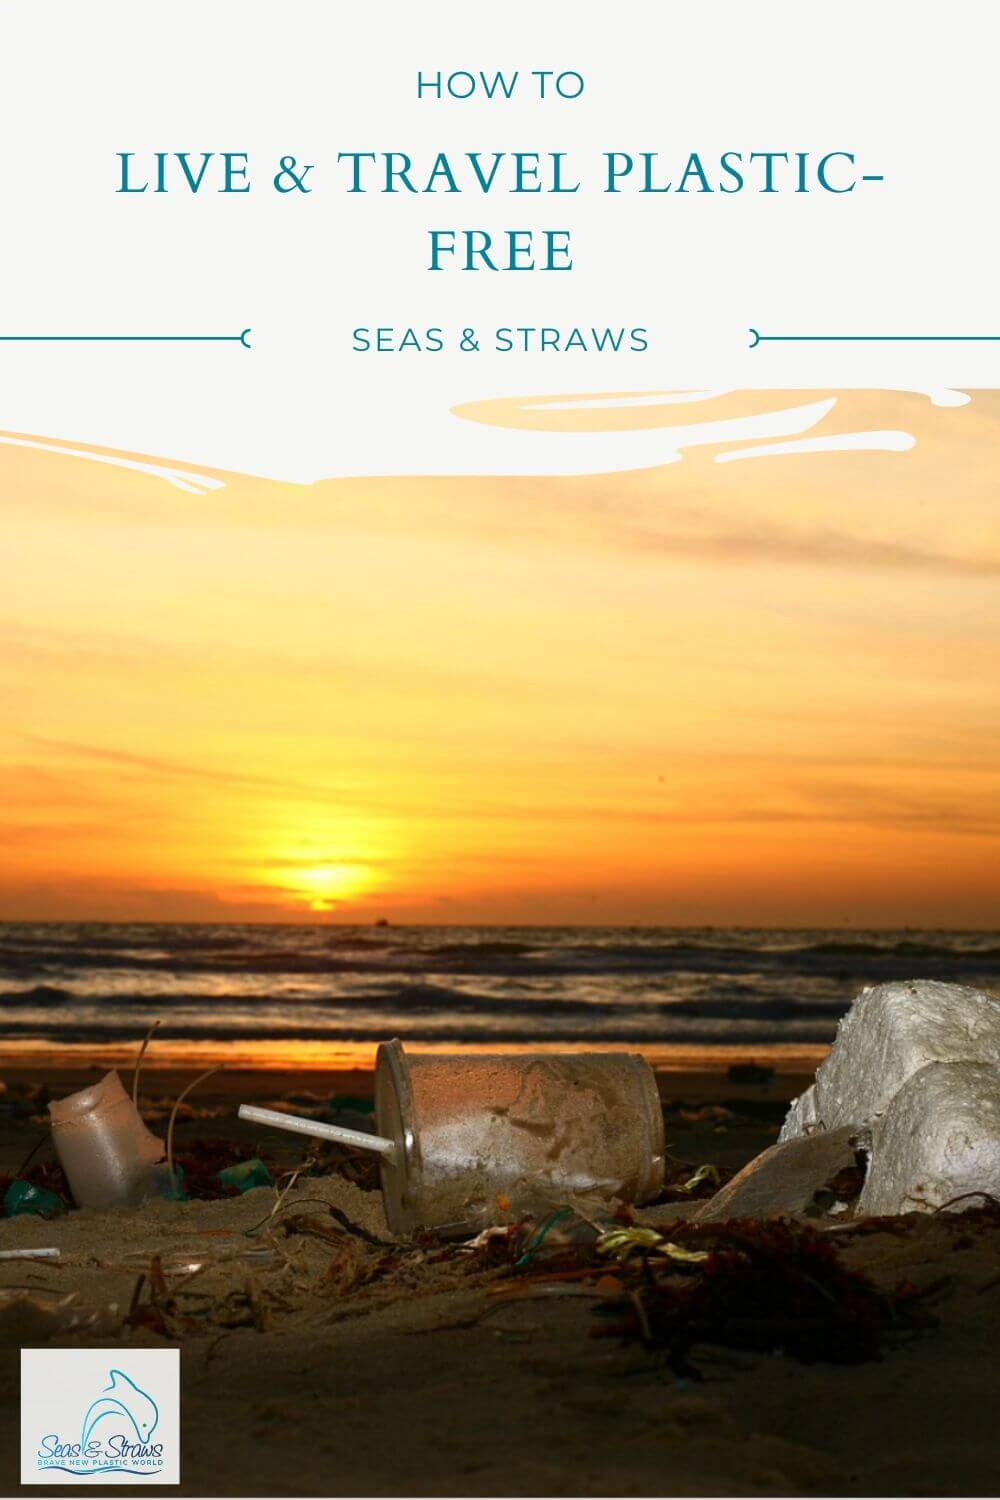 Seas & Straws - Your guide to living and traveling plastic-free